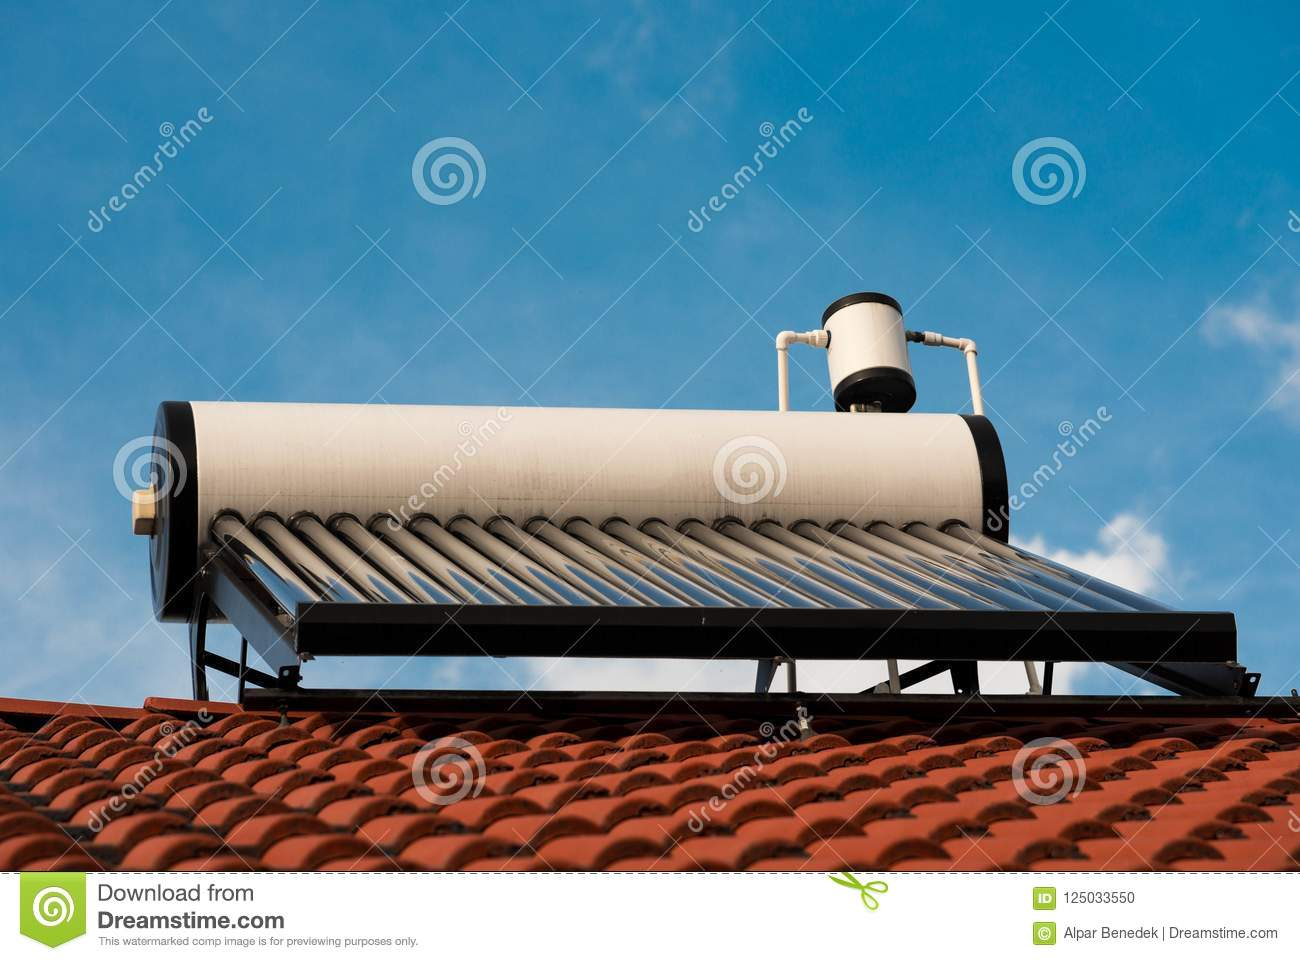 Solar water heater boiler close up shot on residentual house rooftop